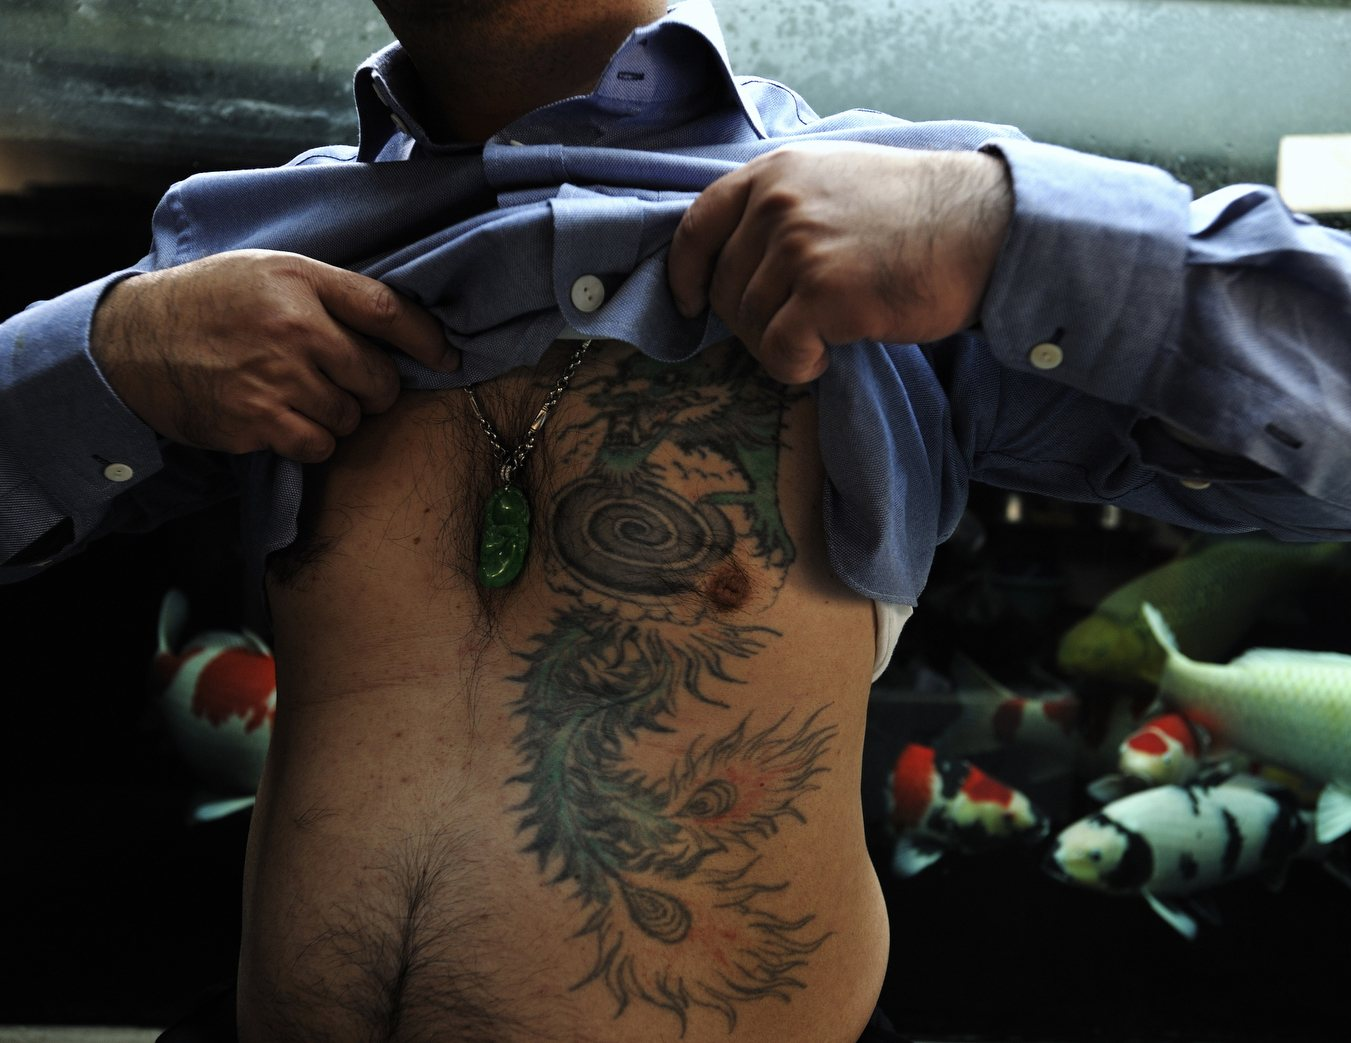 07-dragon-tattoo-on-gang-member. Hong Kong